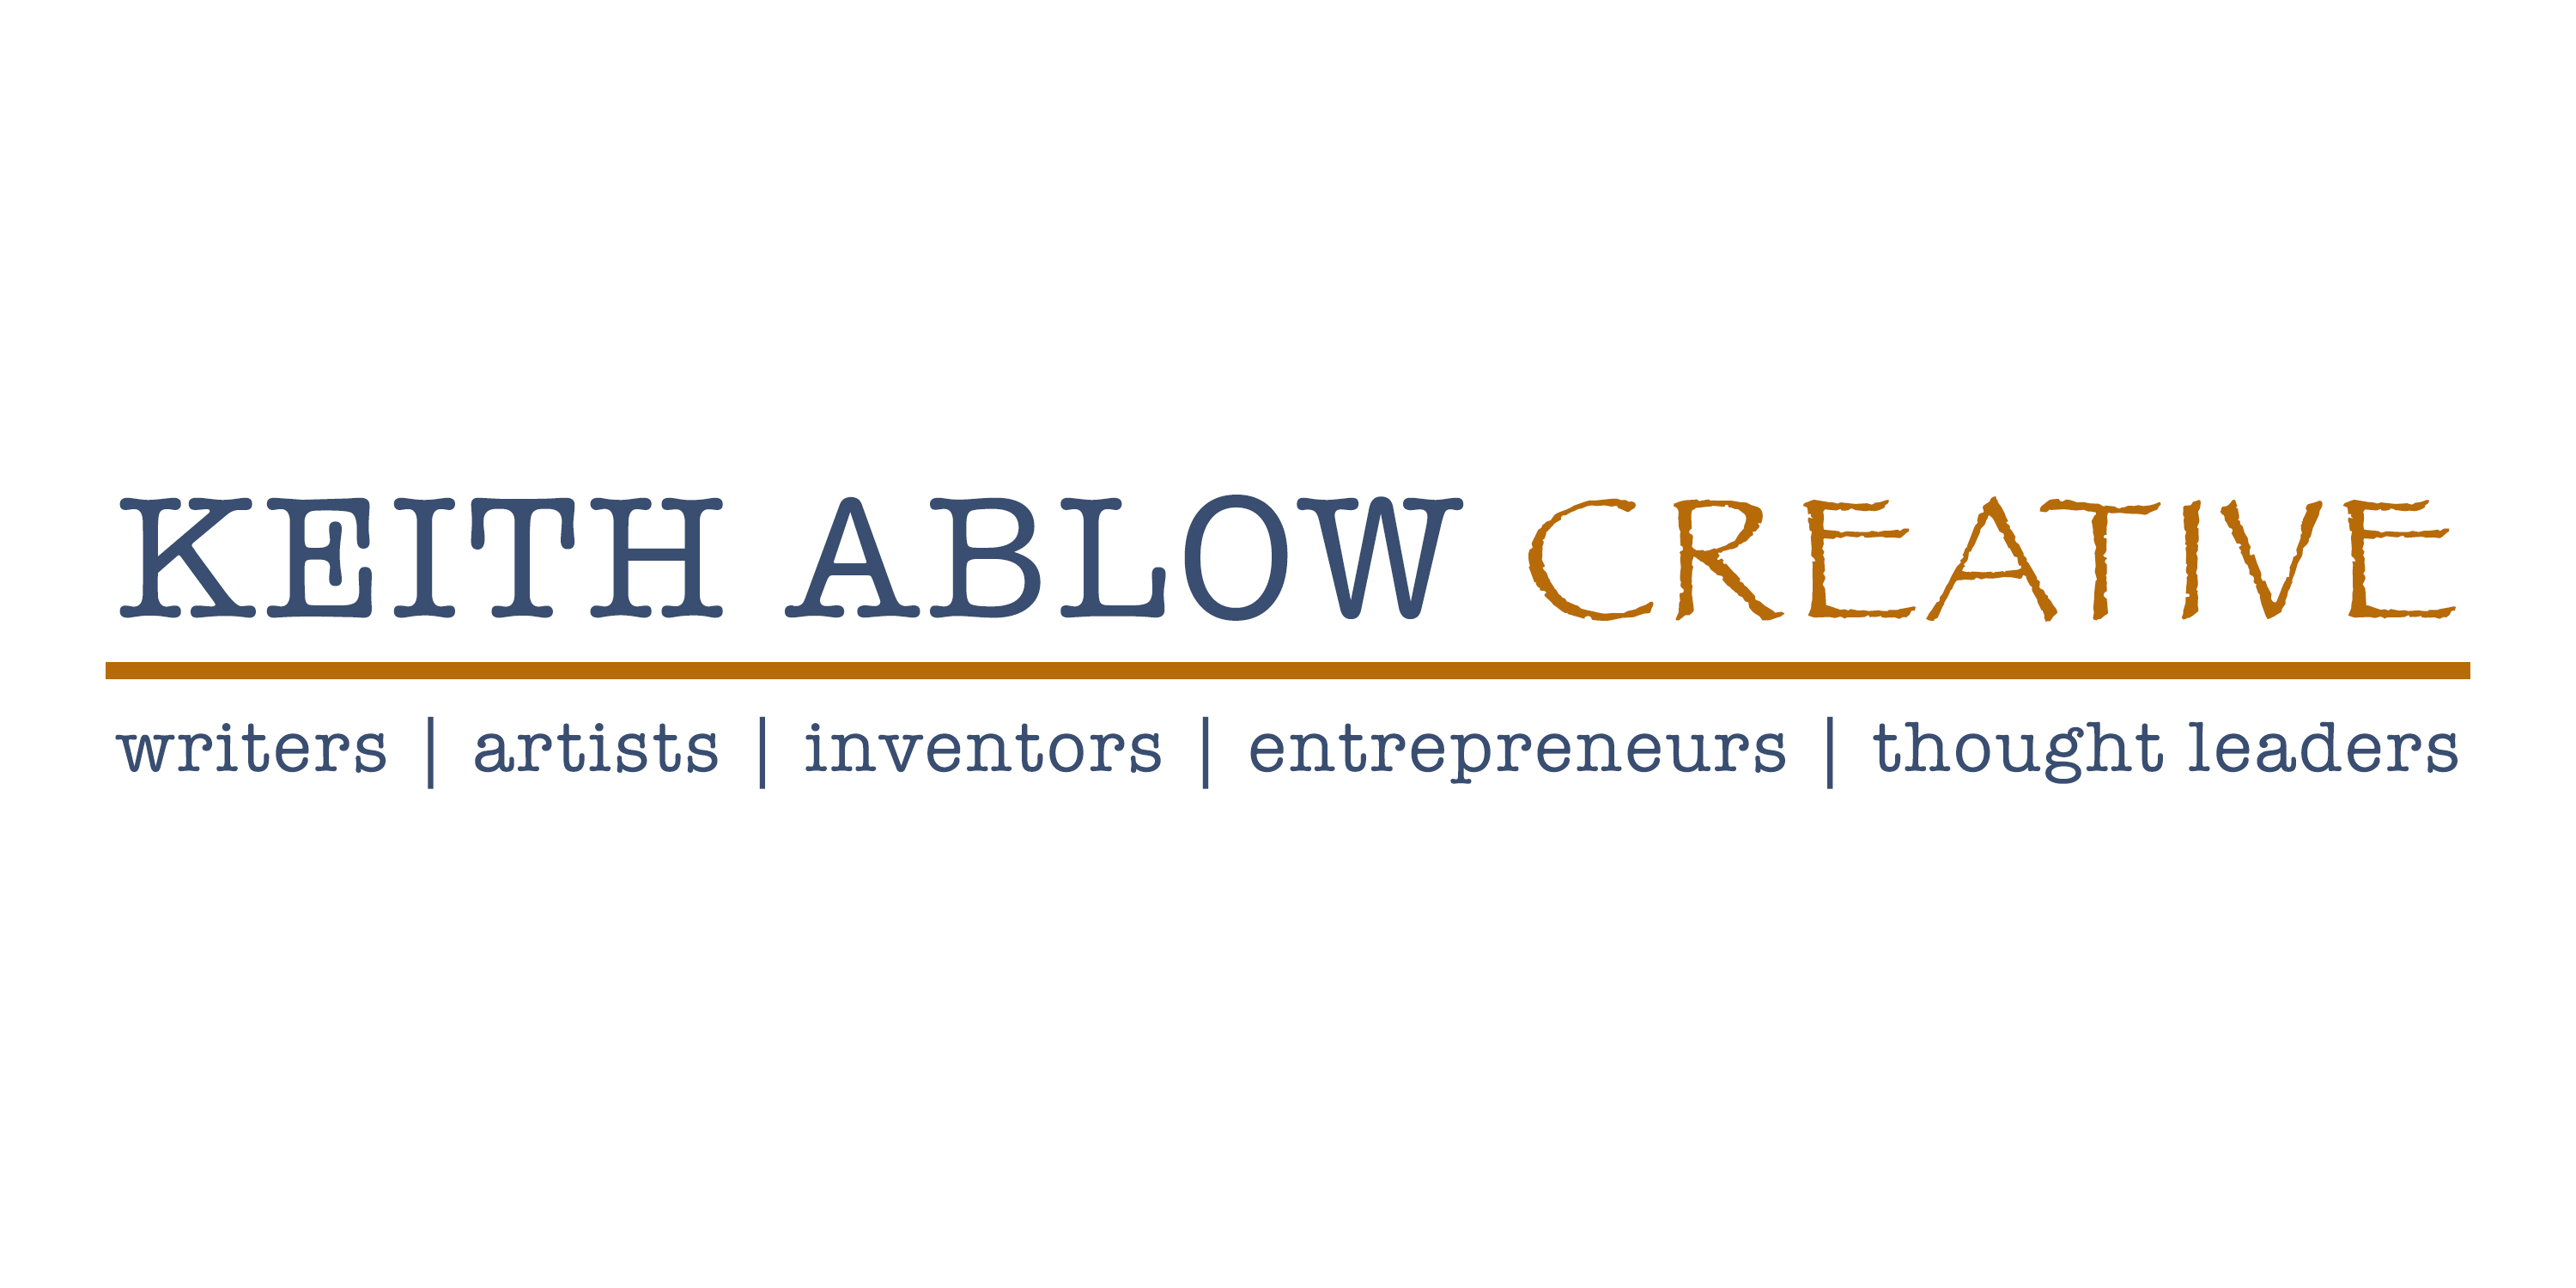 Keith Ablow Creative, Inc.